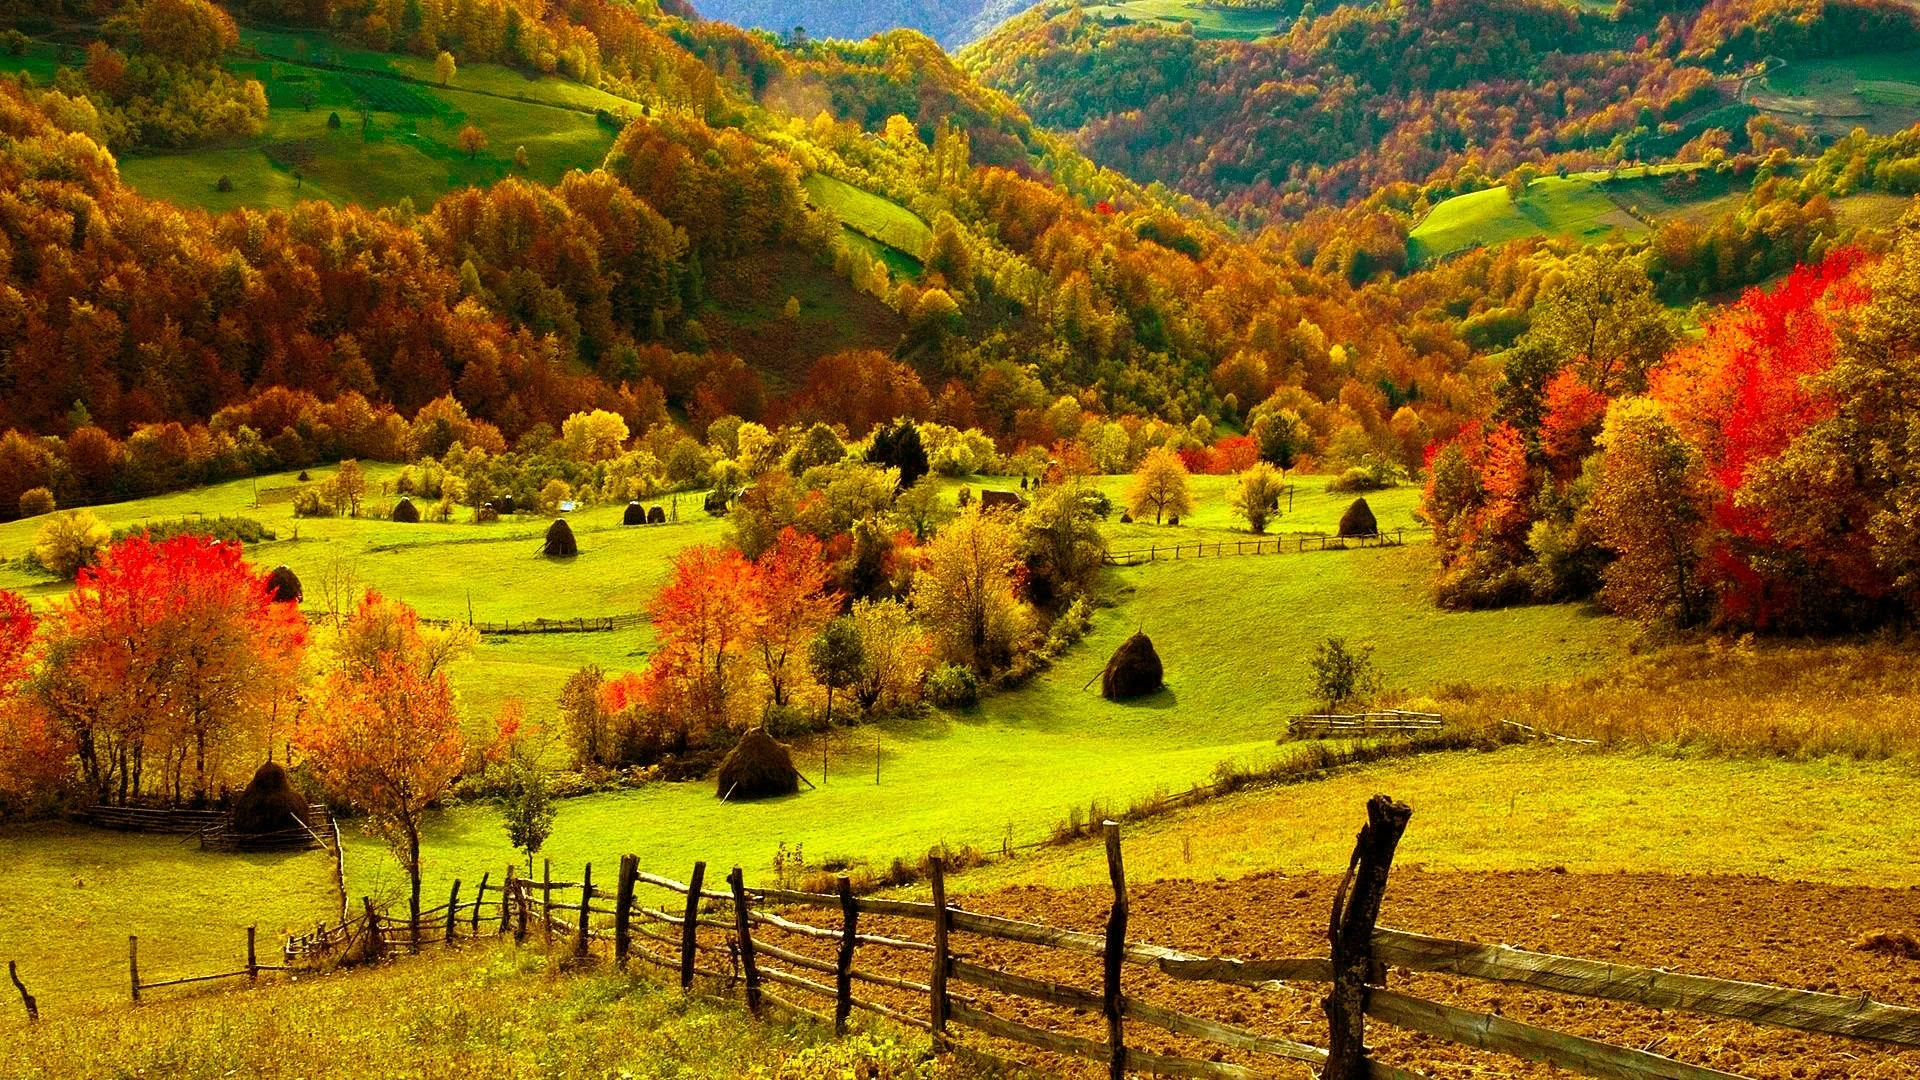 nature landscapes fields hills fence grass farm trees forests autumn 1920x1080